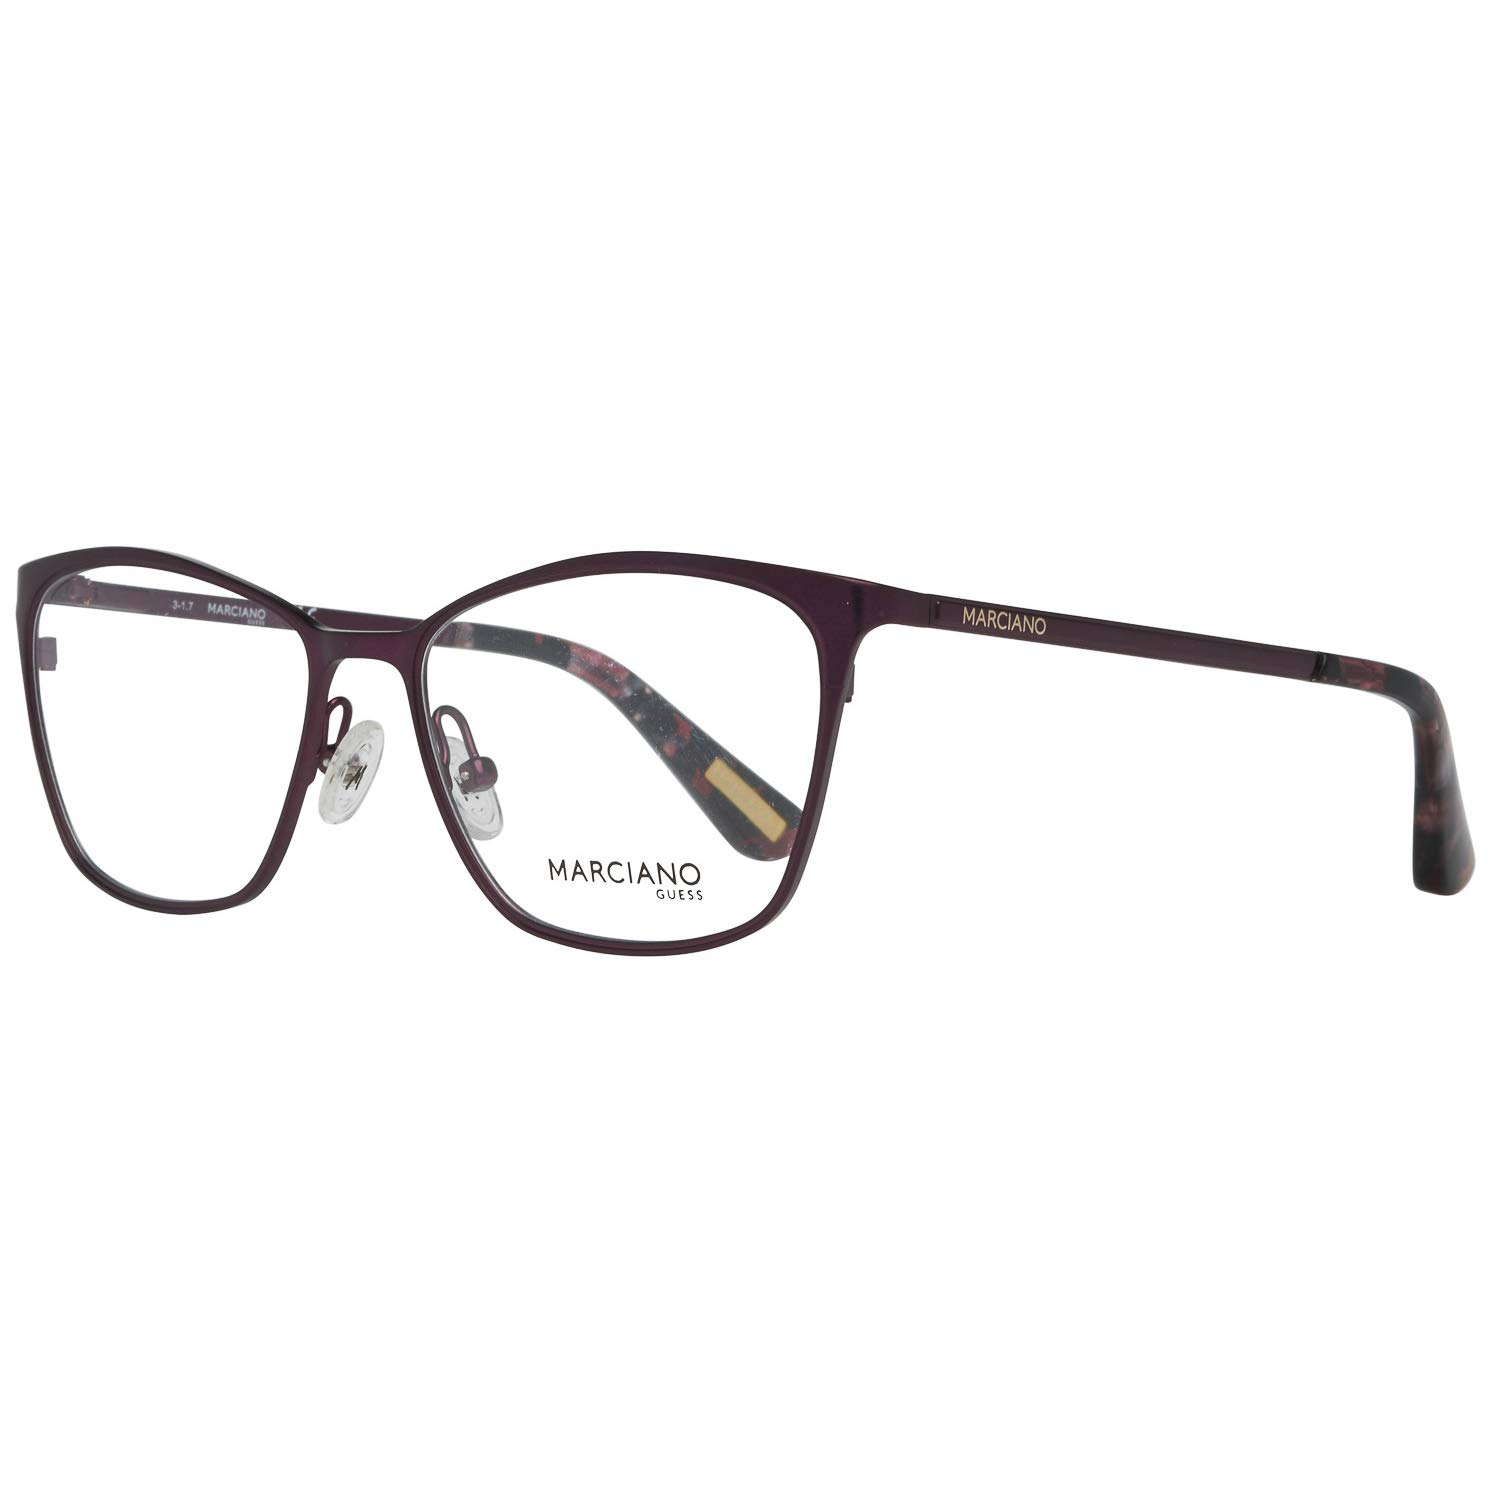 Guess Damen by Marciano Brille Gm0308 52082 Brillengestelle